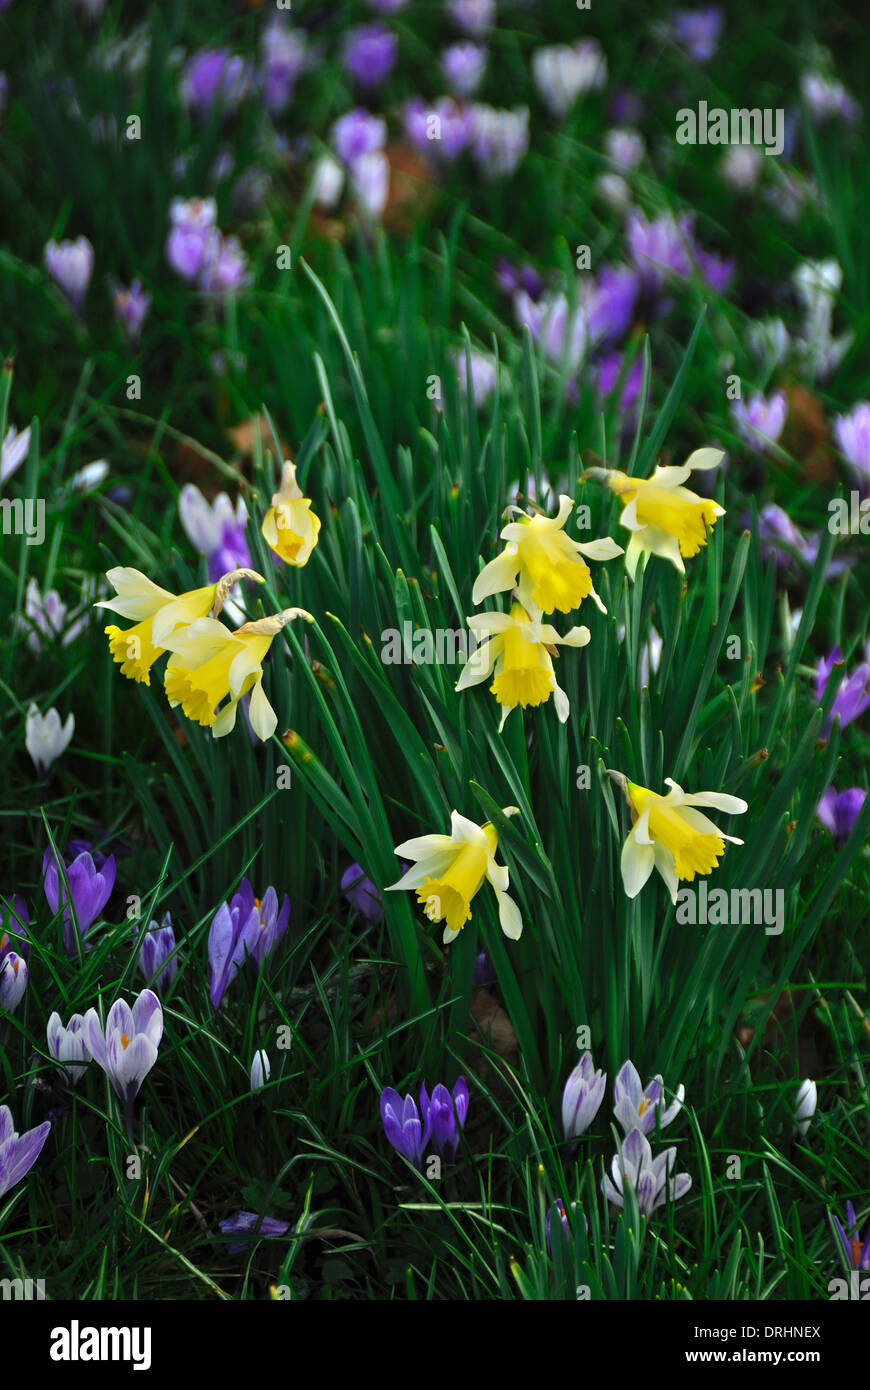 A sea of early spring flowers crocus and daffodils uk stock photo a sea of early spring flowers crocus and daffodils uk mightylinksfo